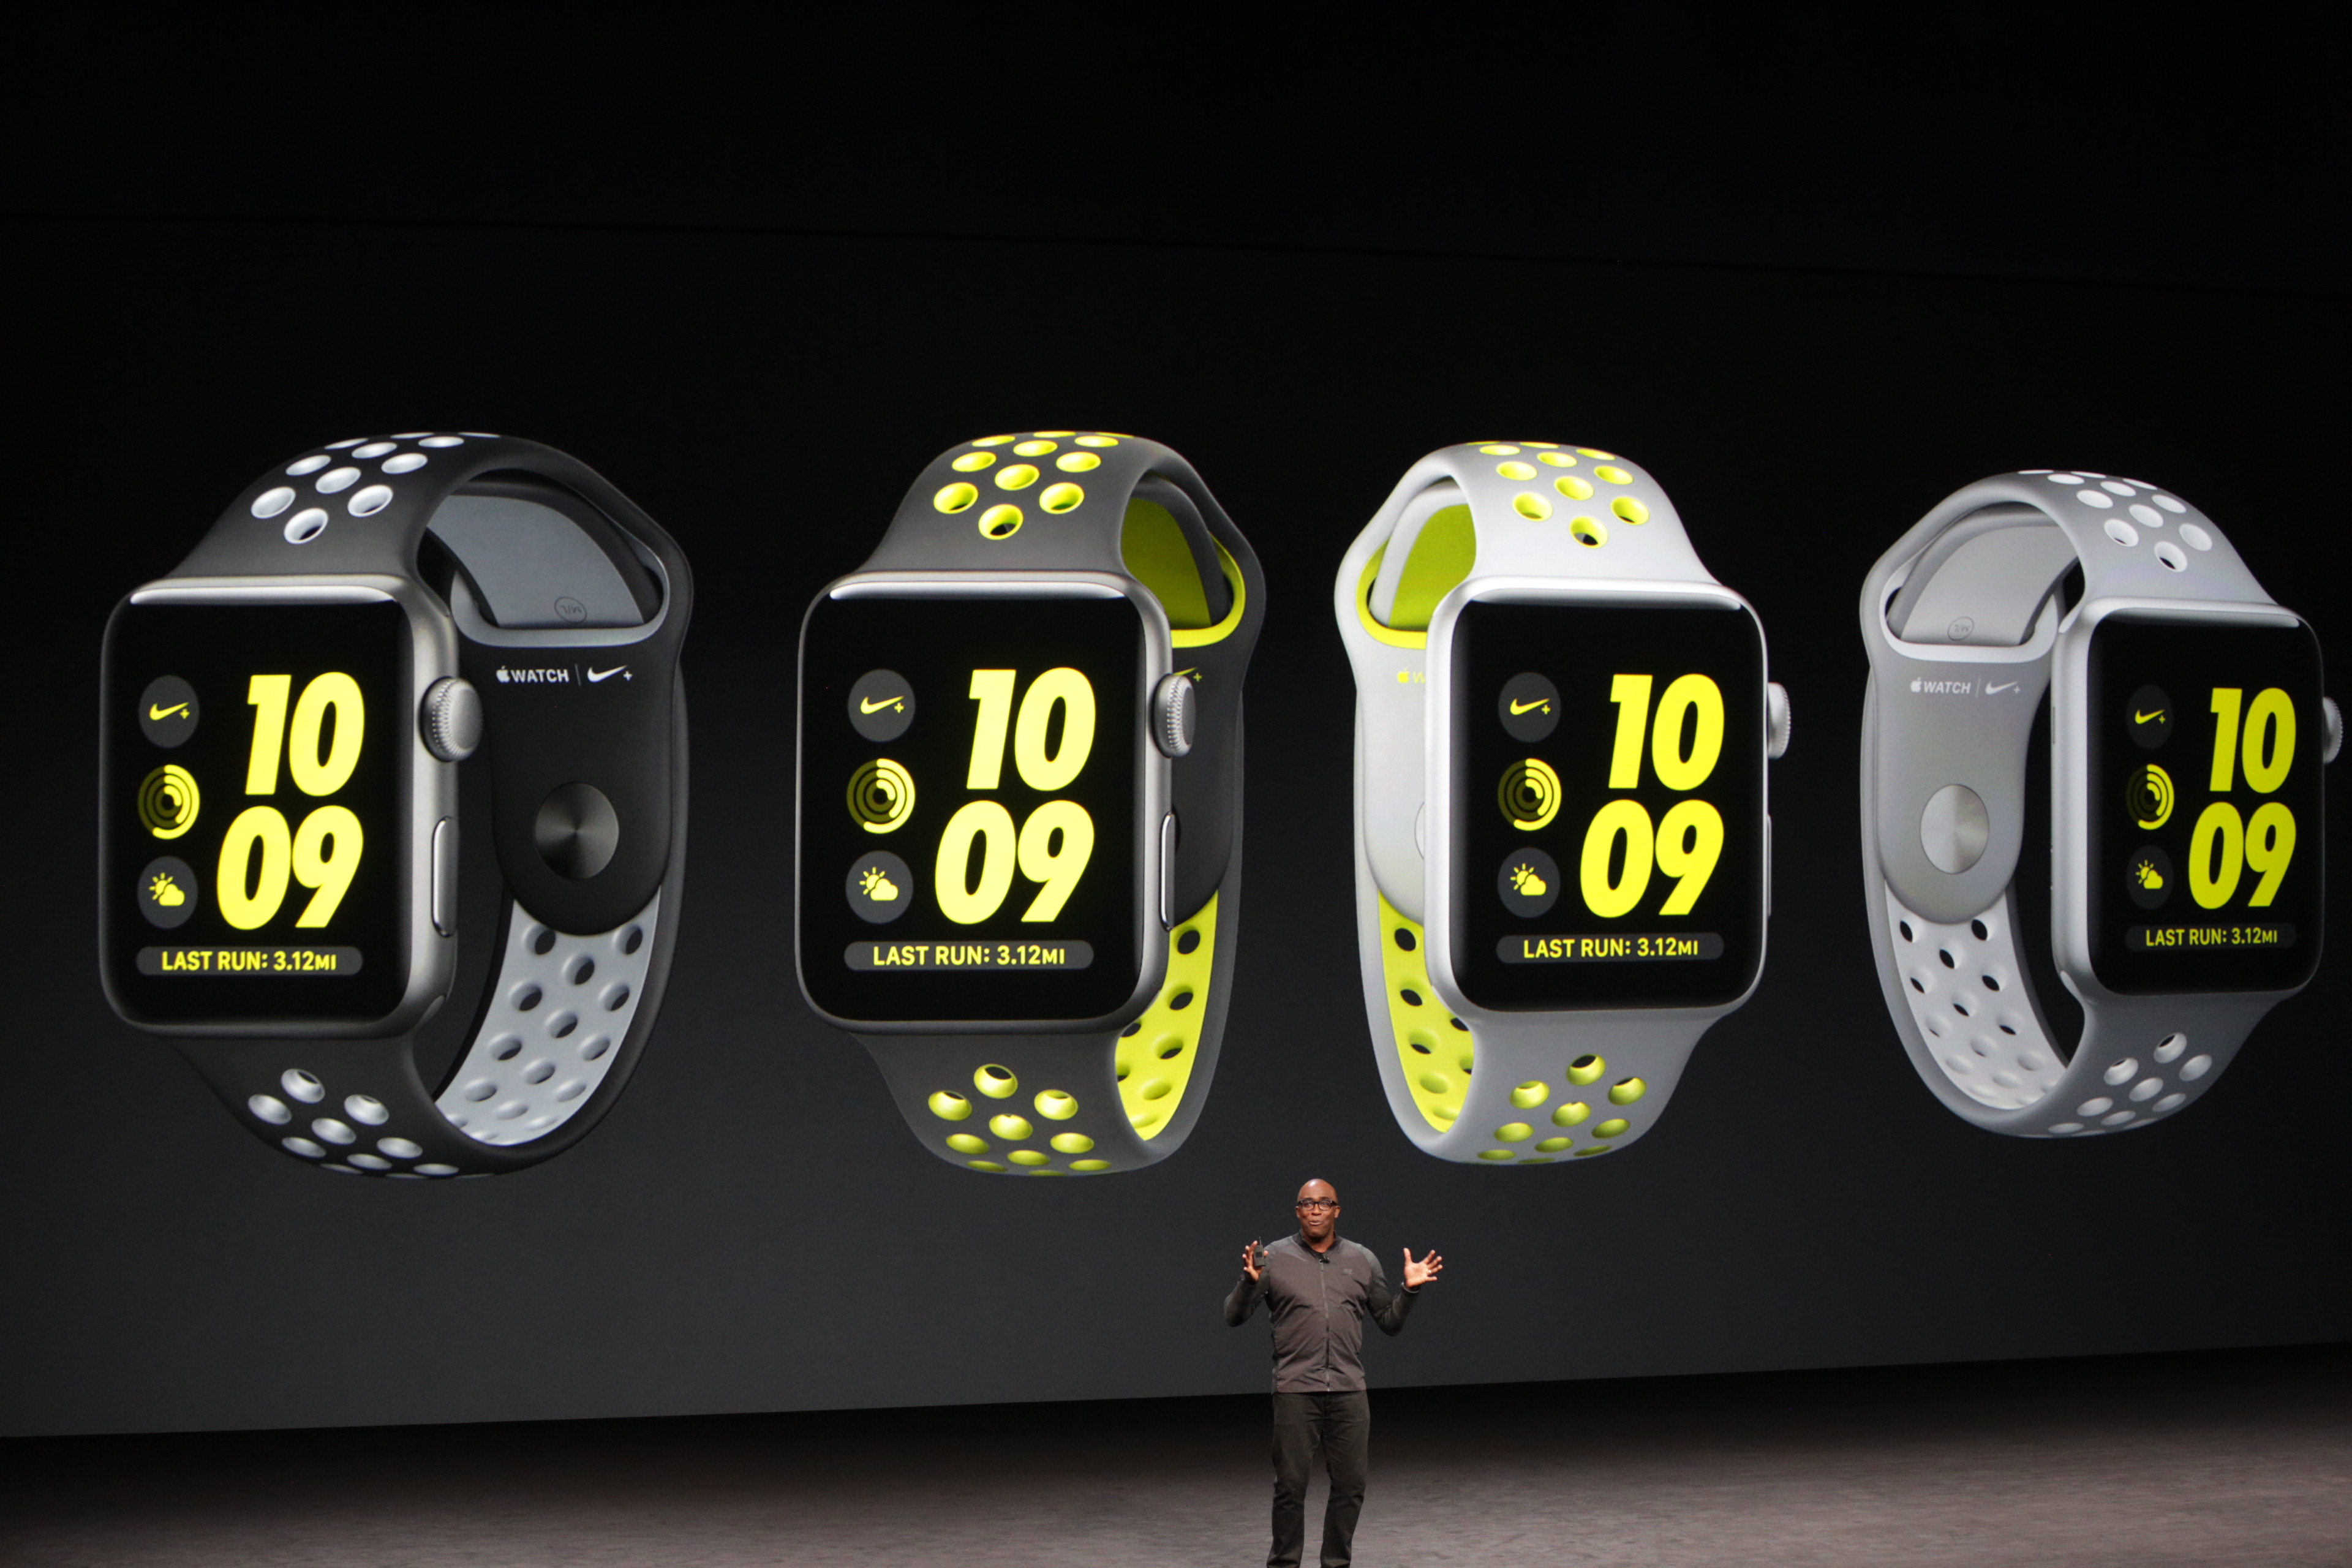 Apple and Nike teamed up to make a Nike+ special edition Watch Series 2